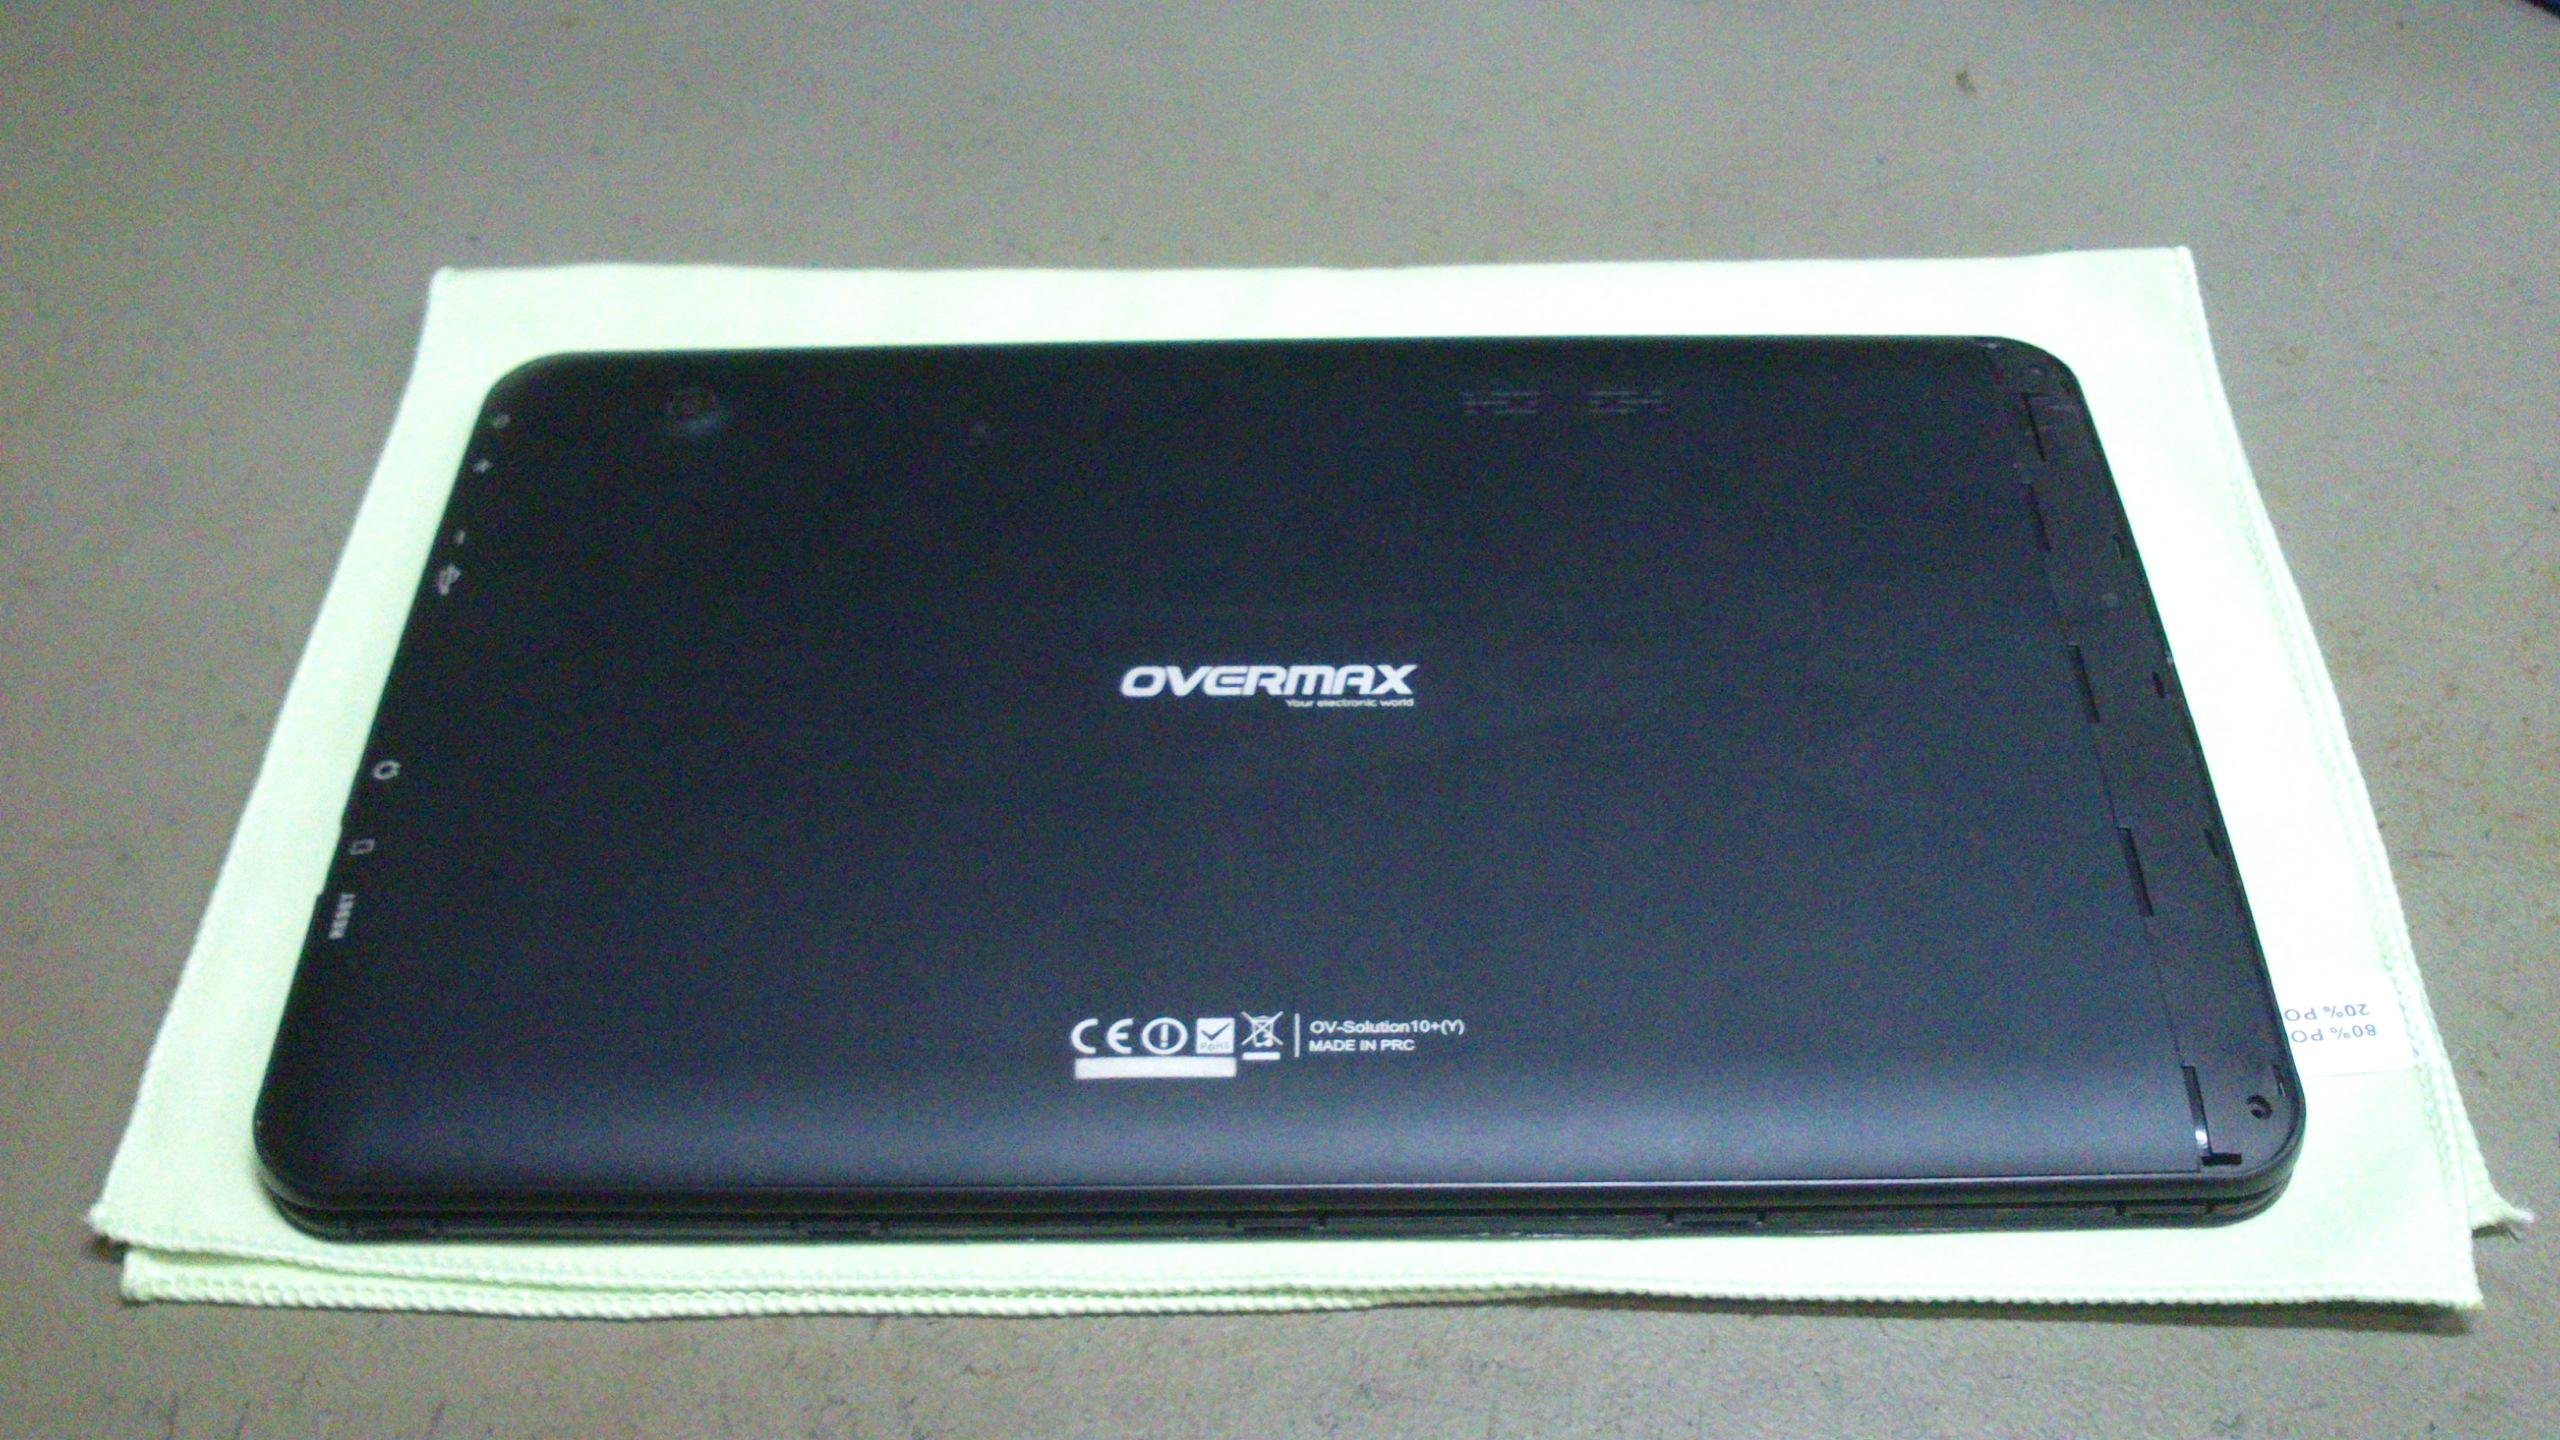 Overmax tablet: micro USB csere